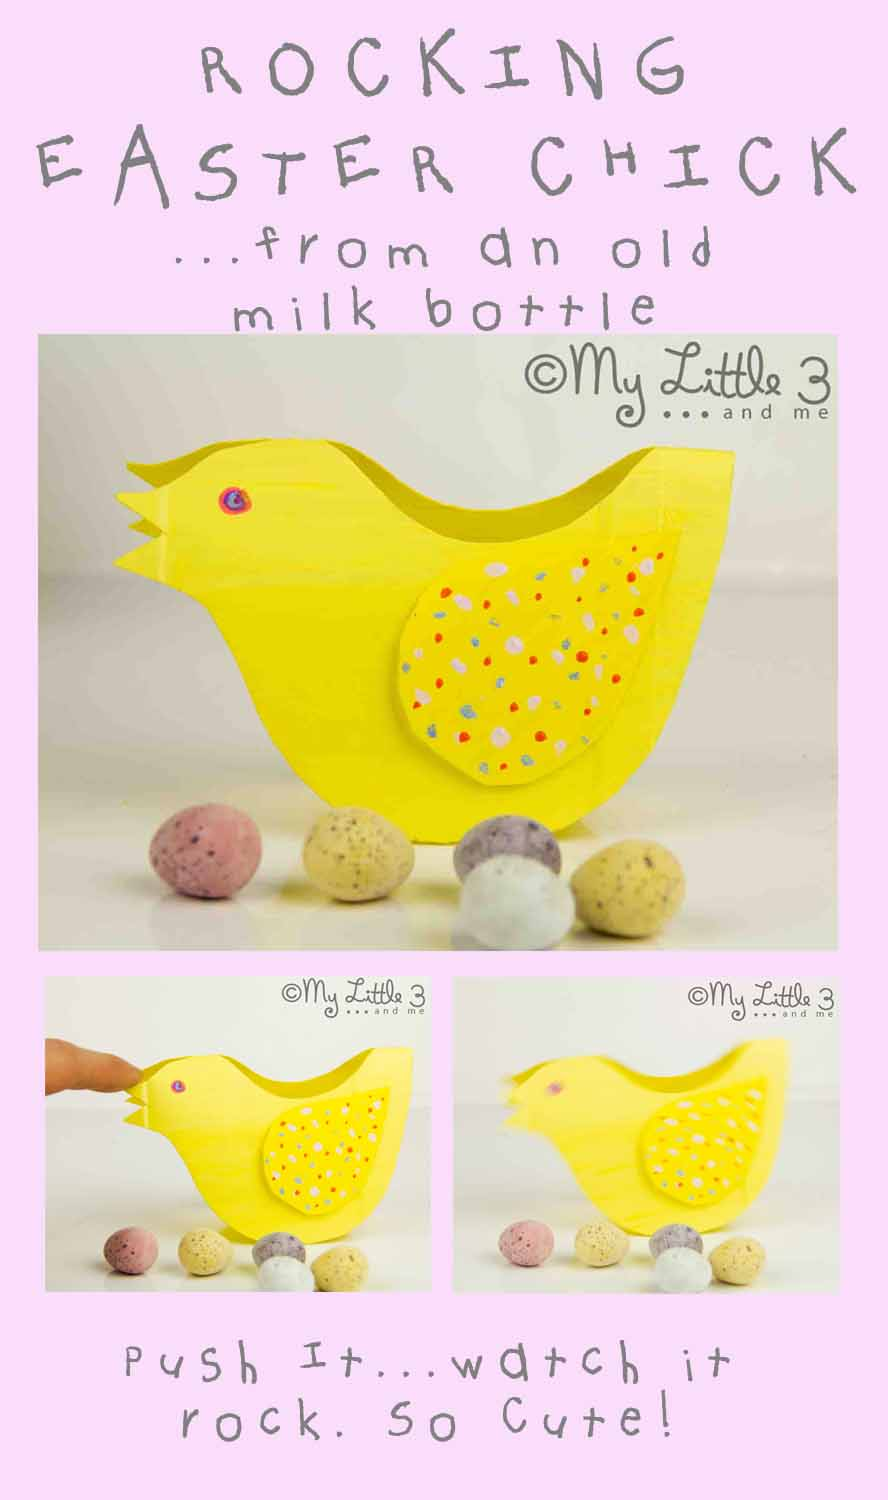 easter chick templates free - 6 best images of cute printable easter chick face easter